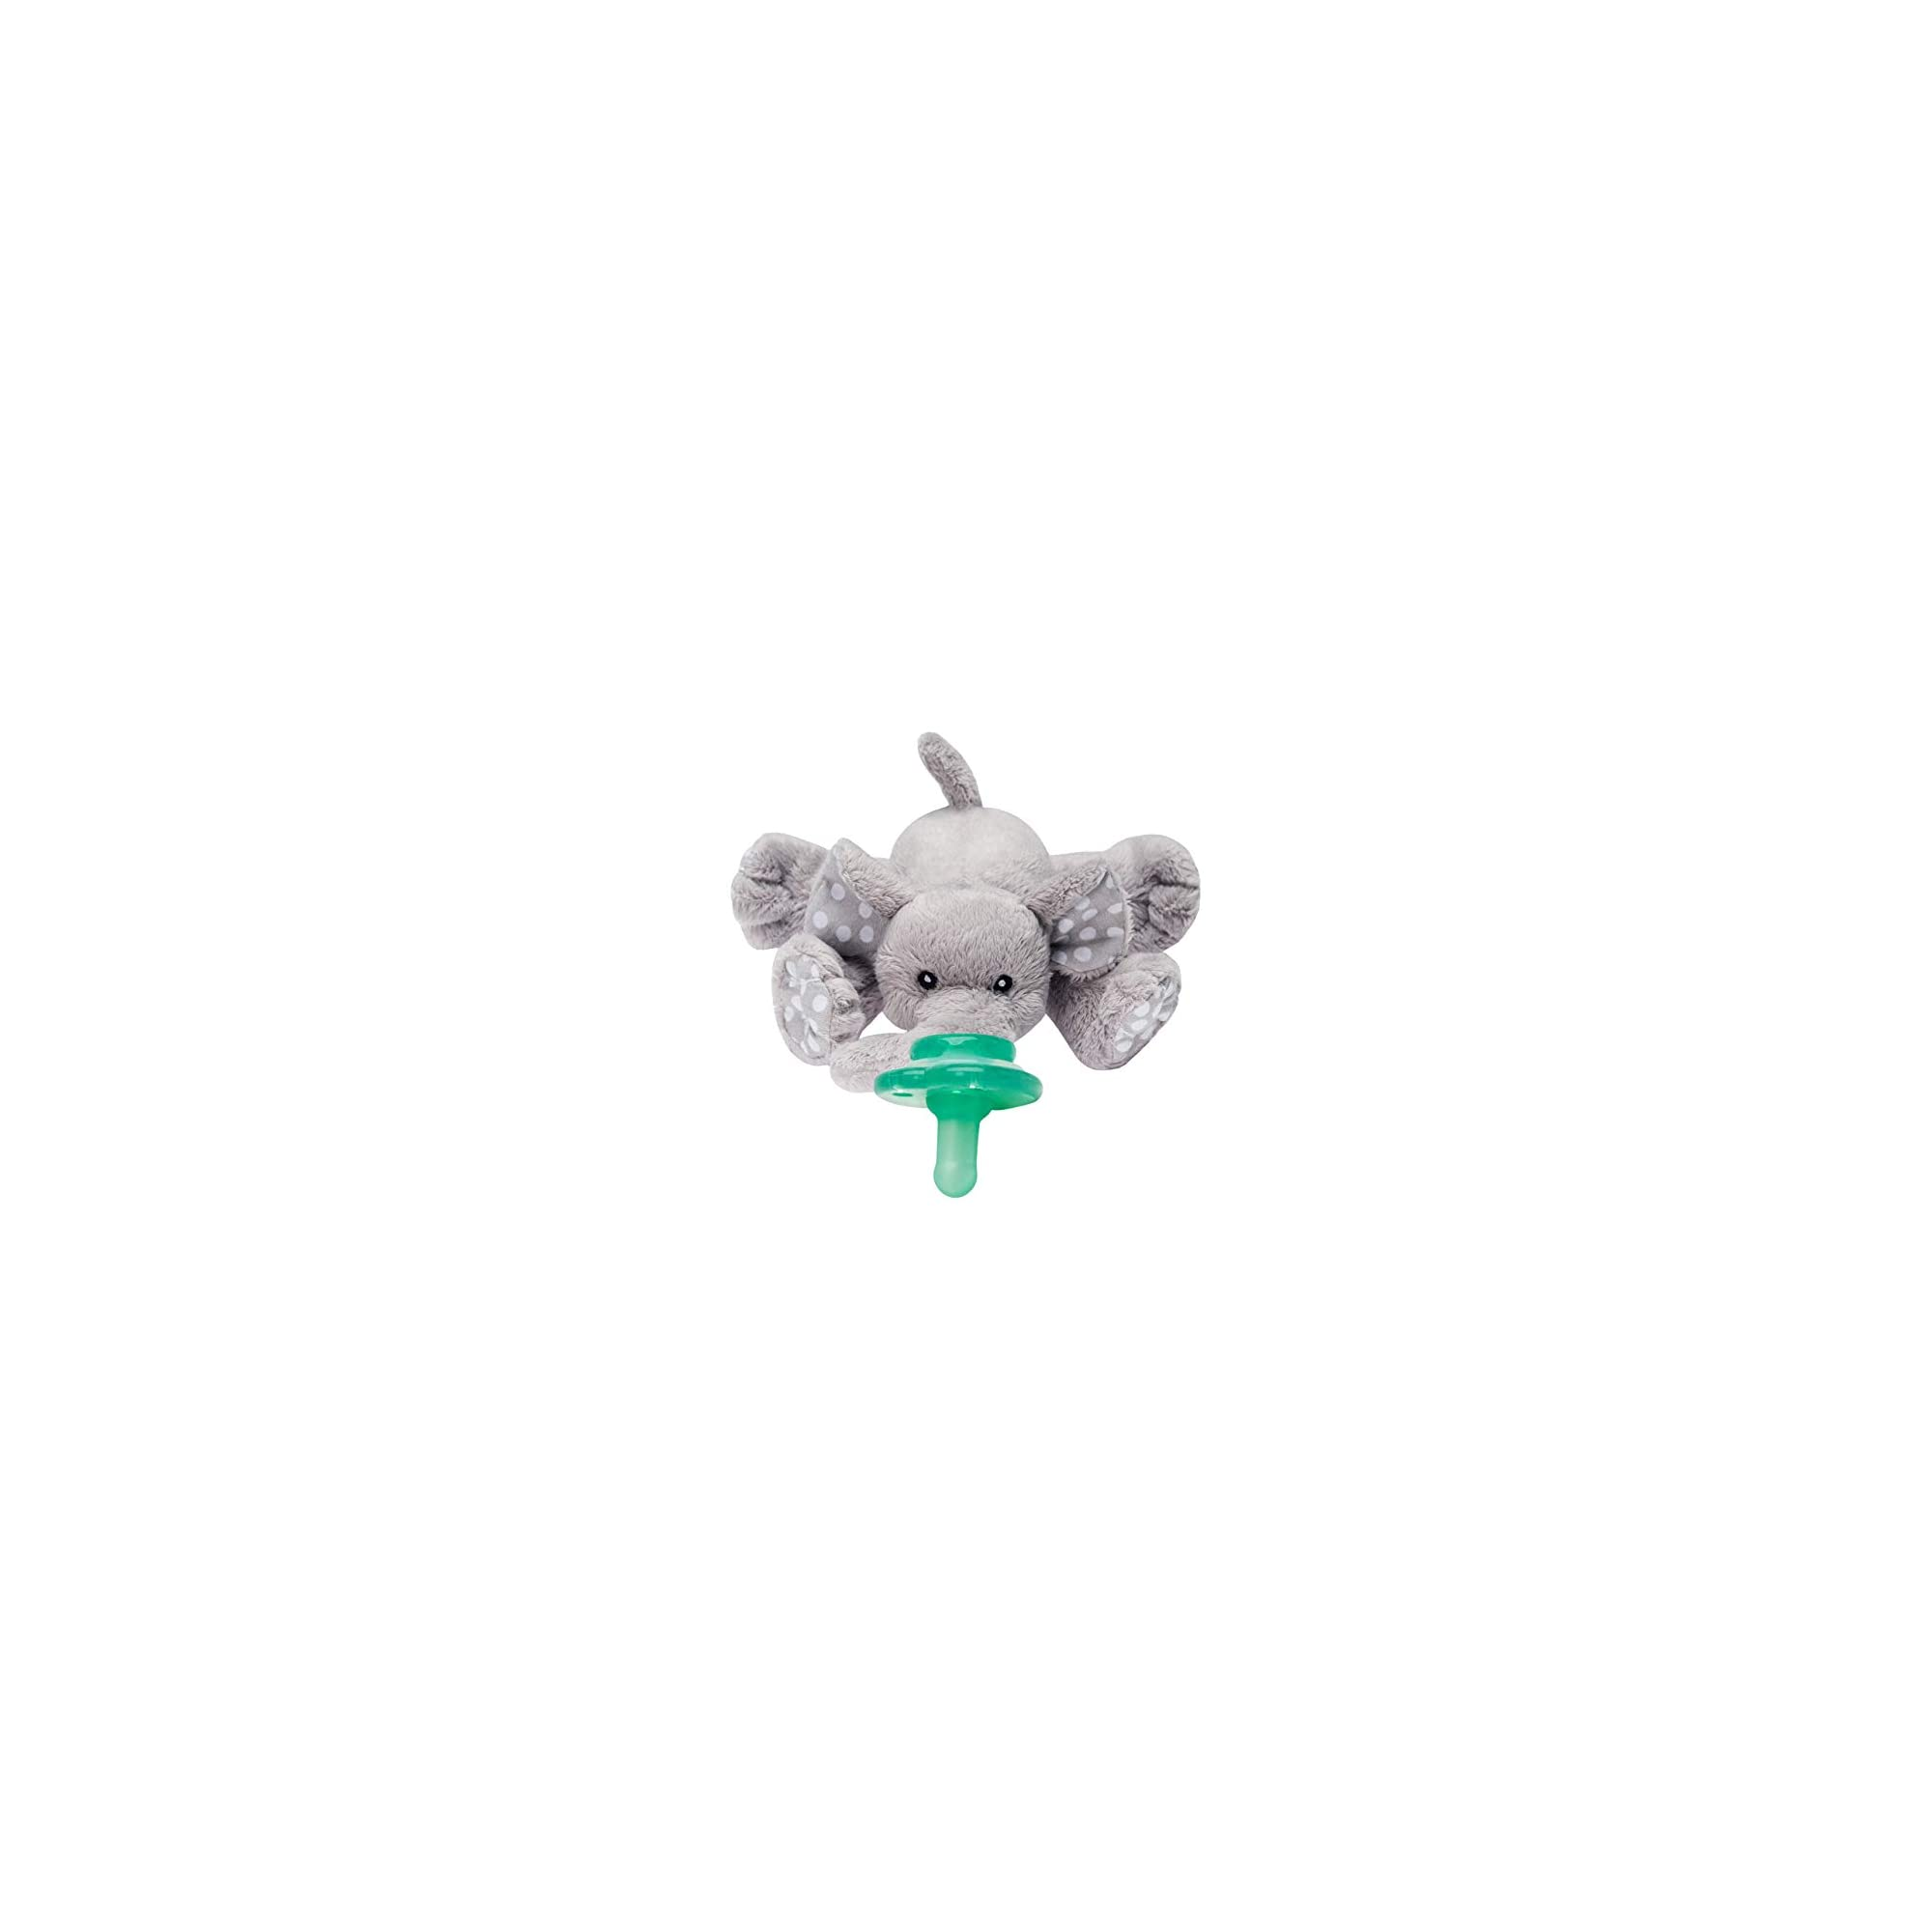 Nookums Paci-Plushies Buddies – Elephant Pacifier Holder – Adapts to Name Brand Pacifiers, Suitable for All Ages, Plush Toy Includes Detachable Pacifier